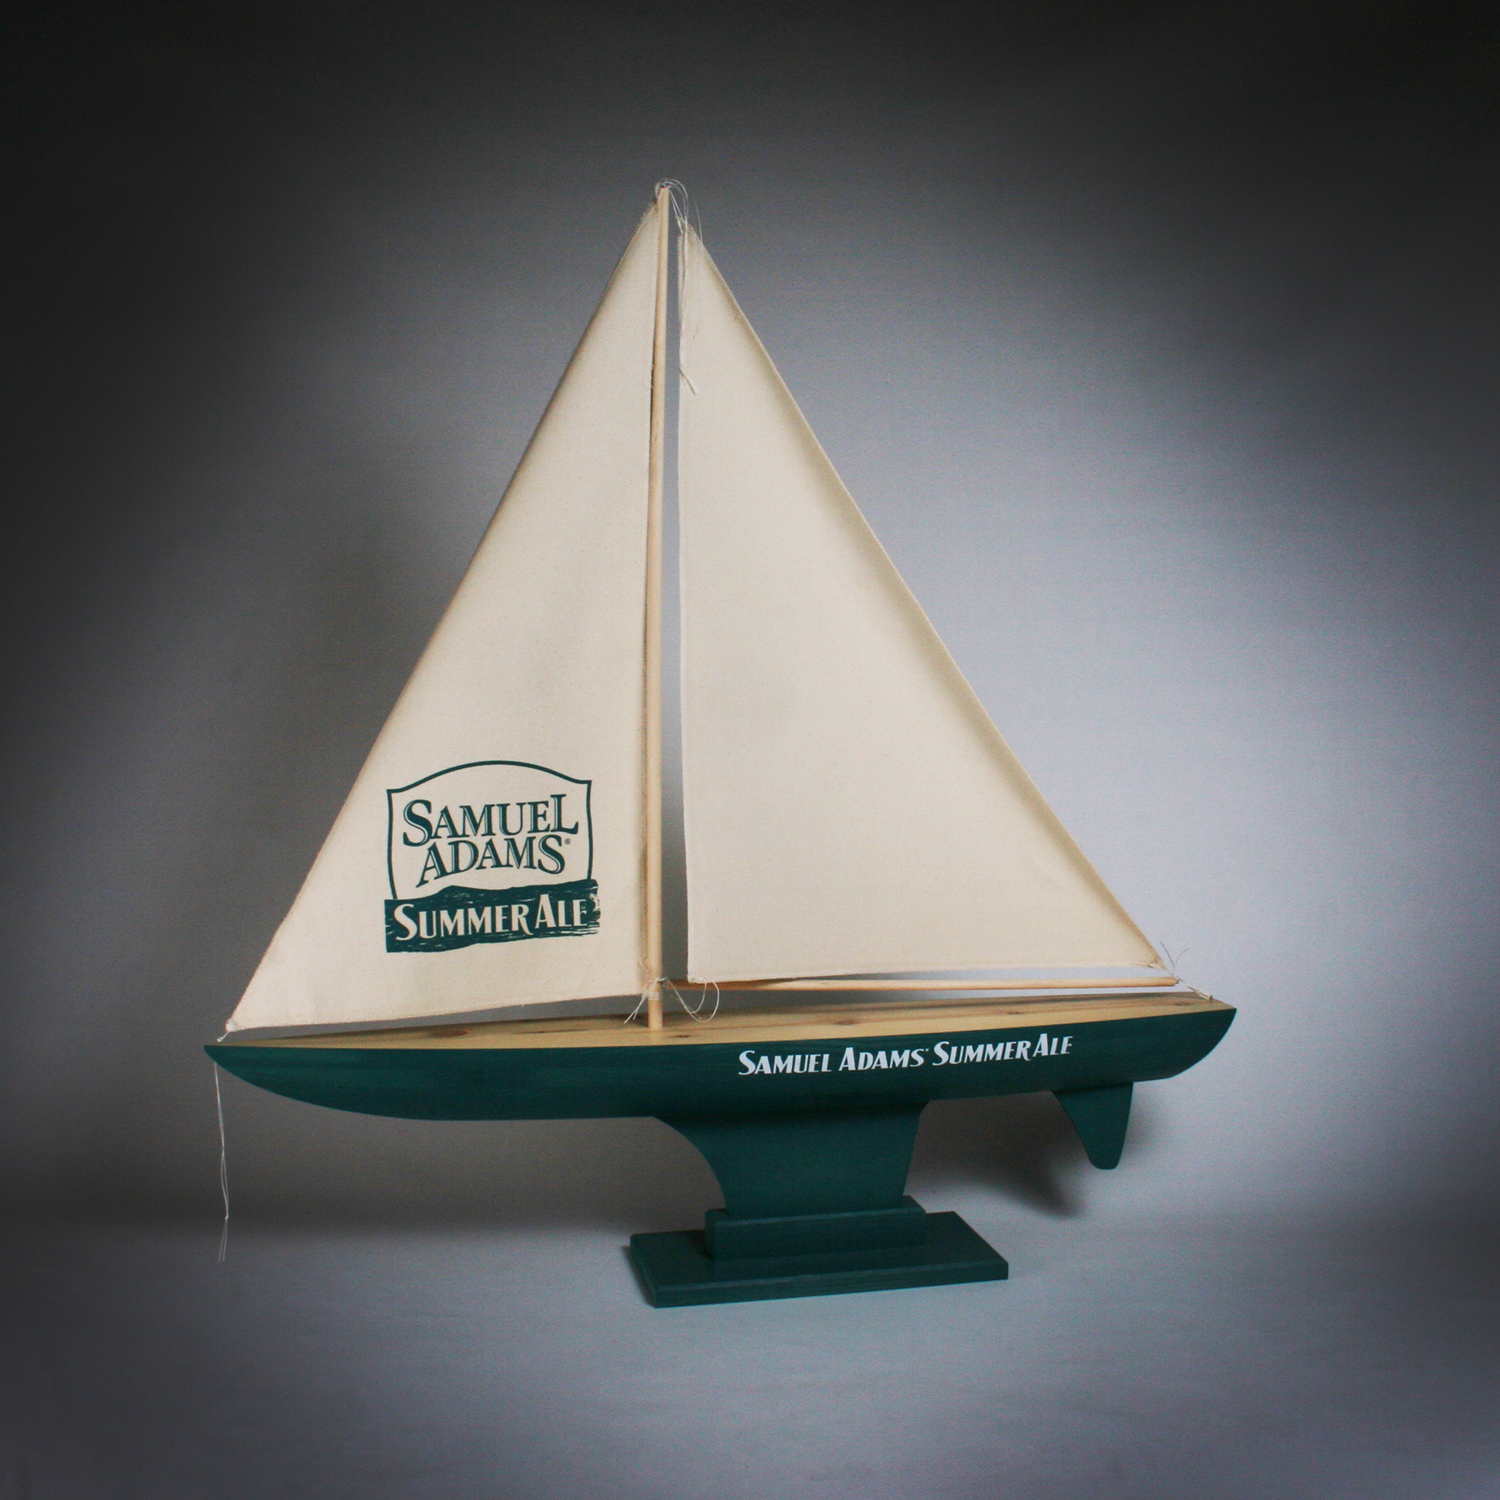 Samuel Adams Sailboat